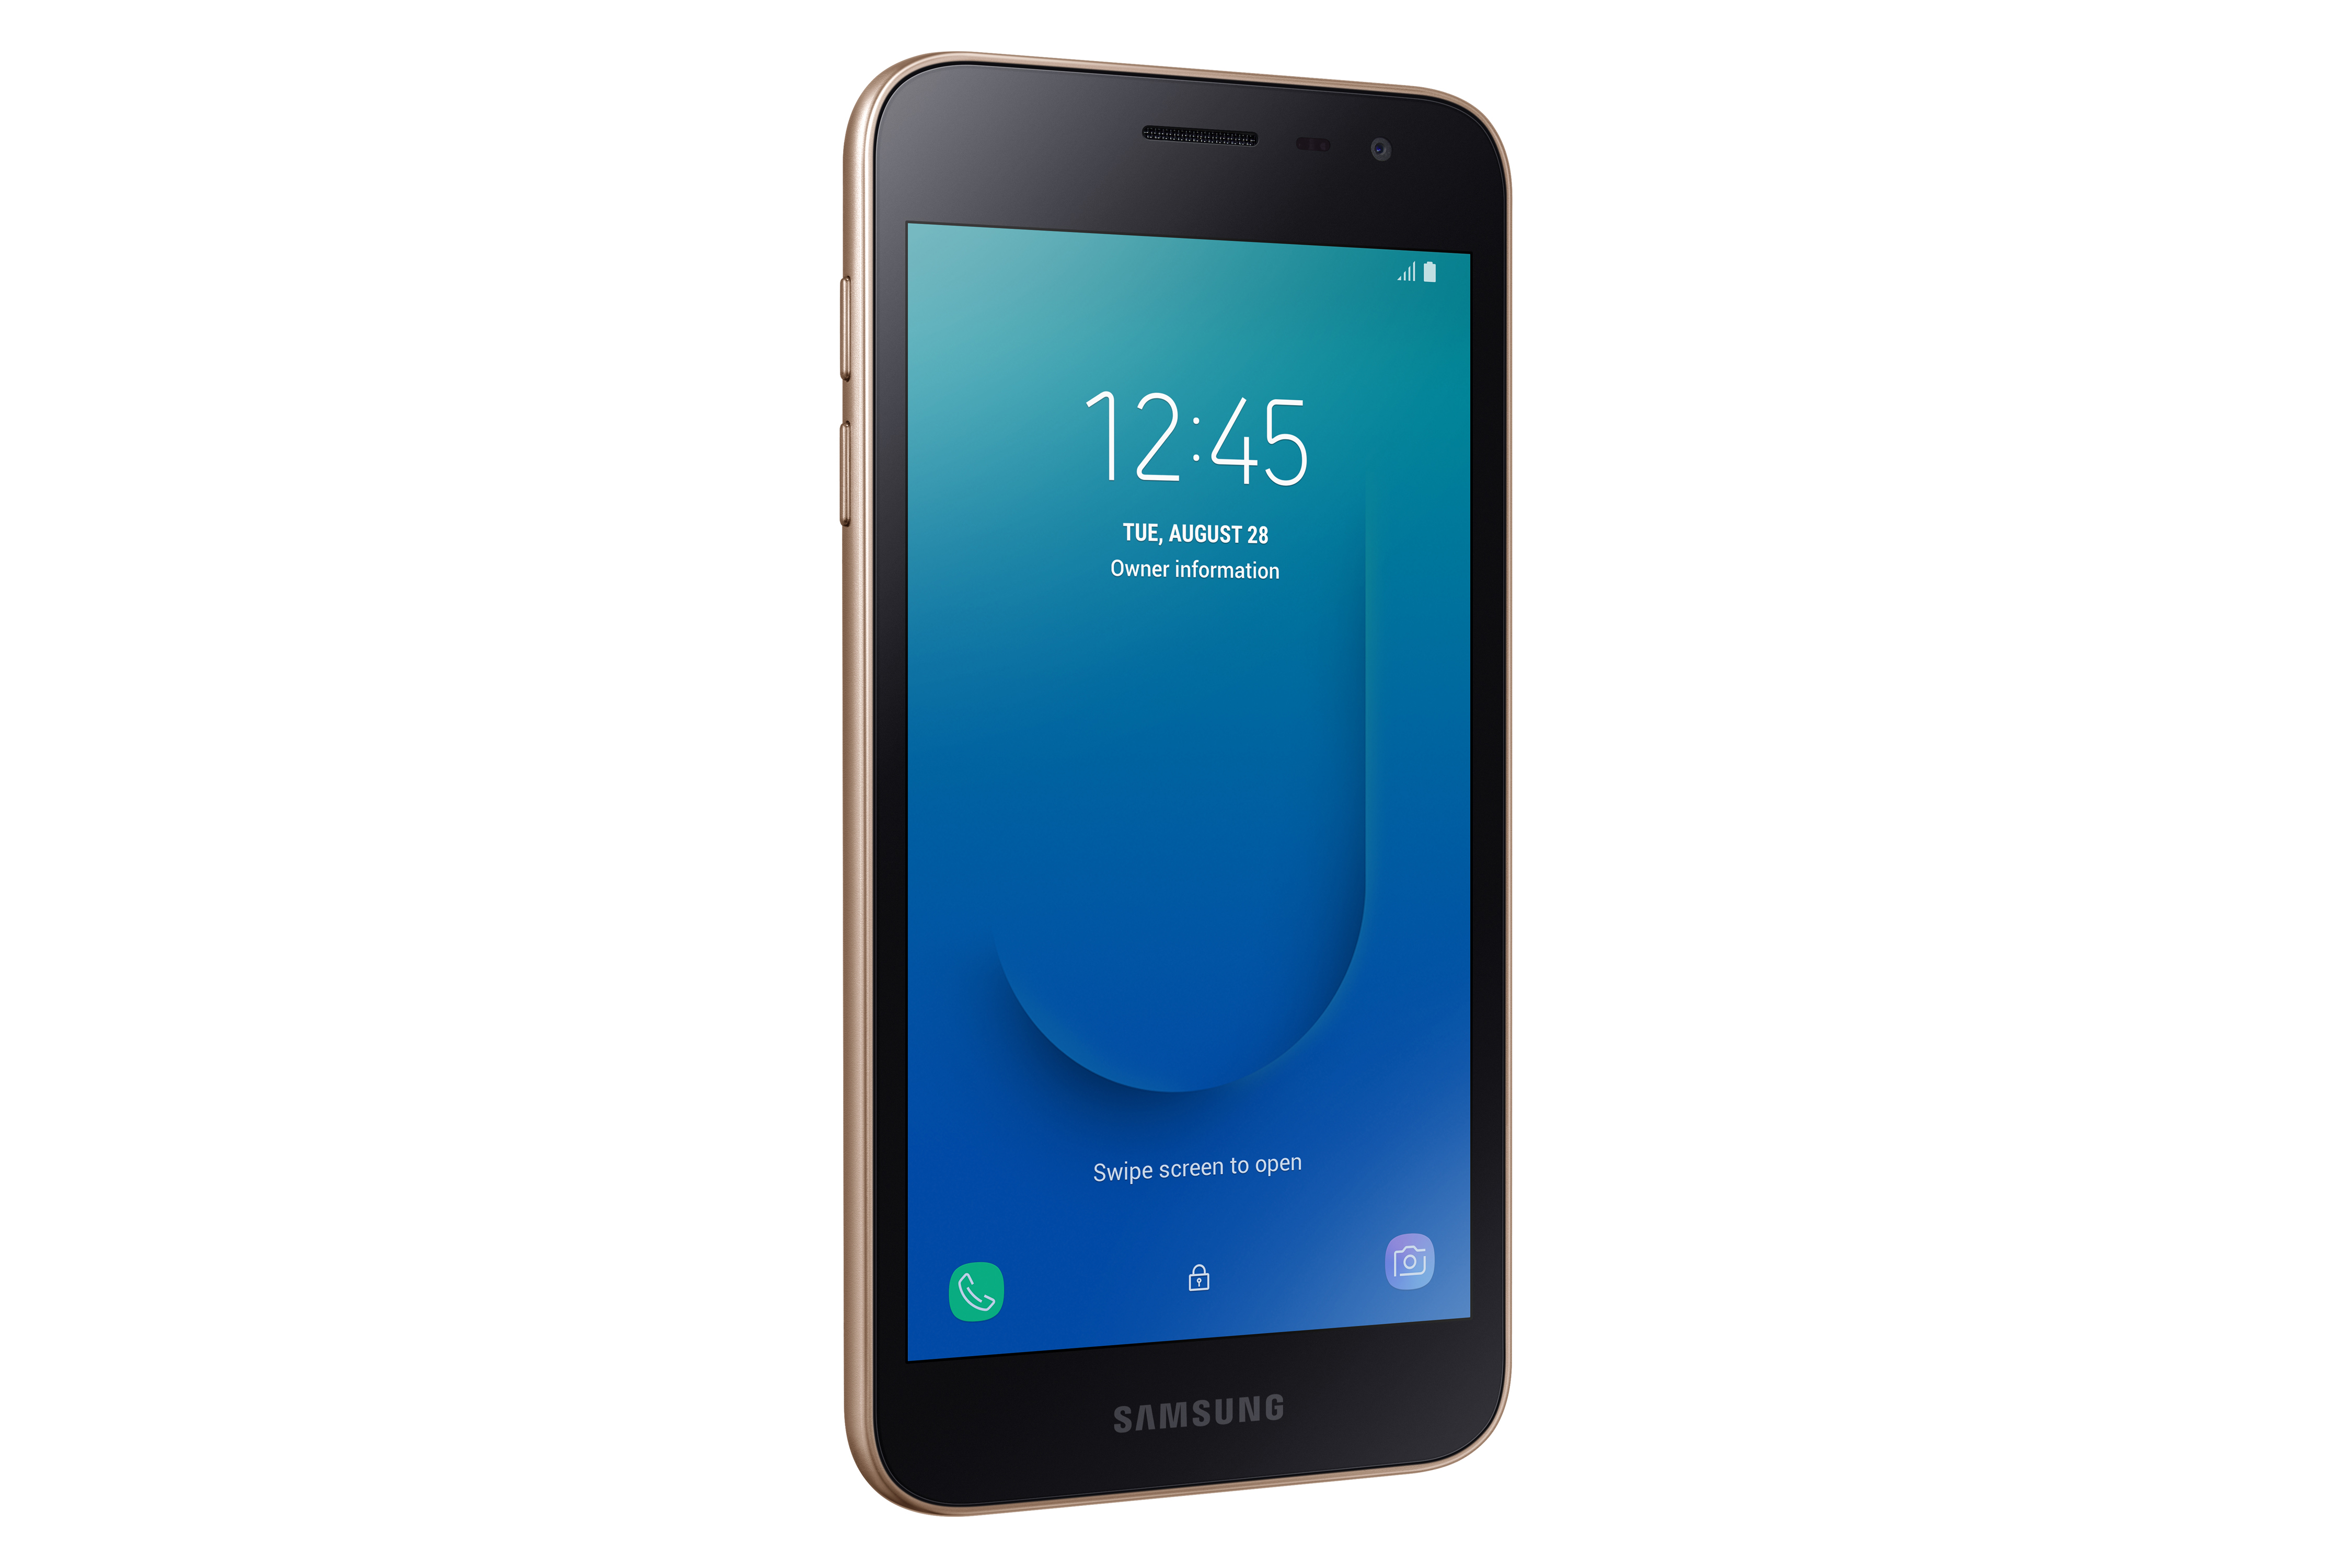 Samsung Galaxy J2 Core: Available in India and Malaysia